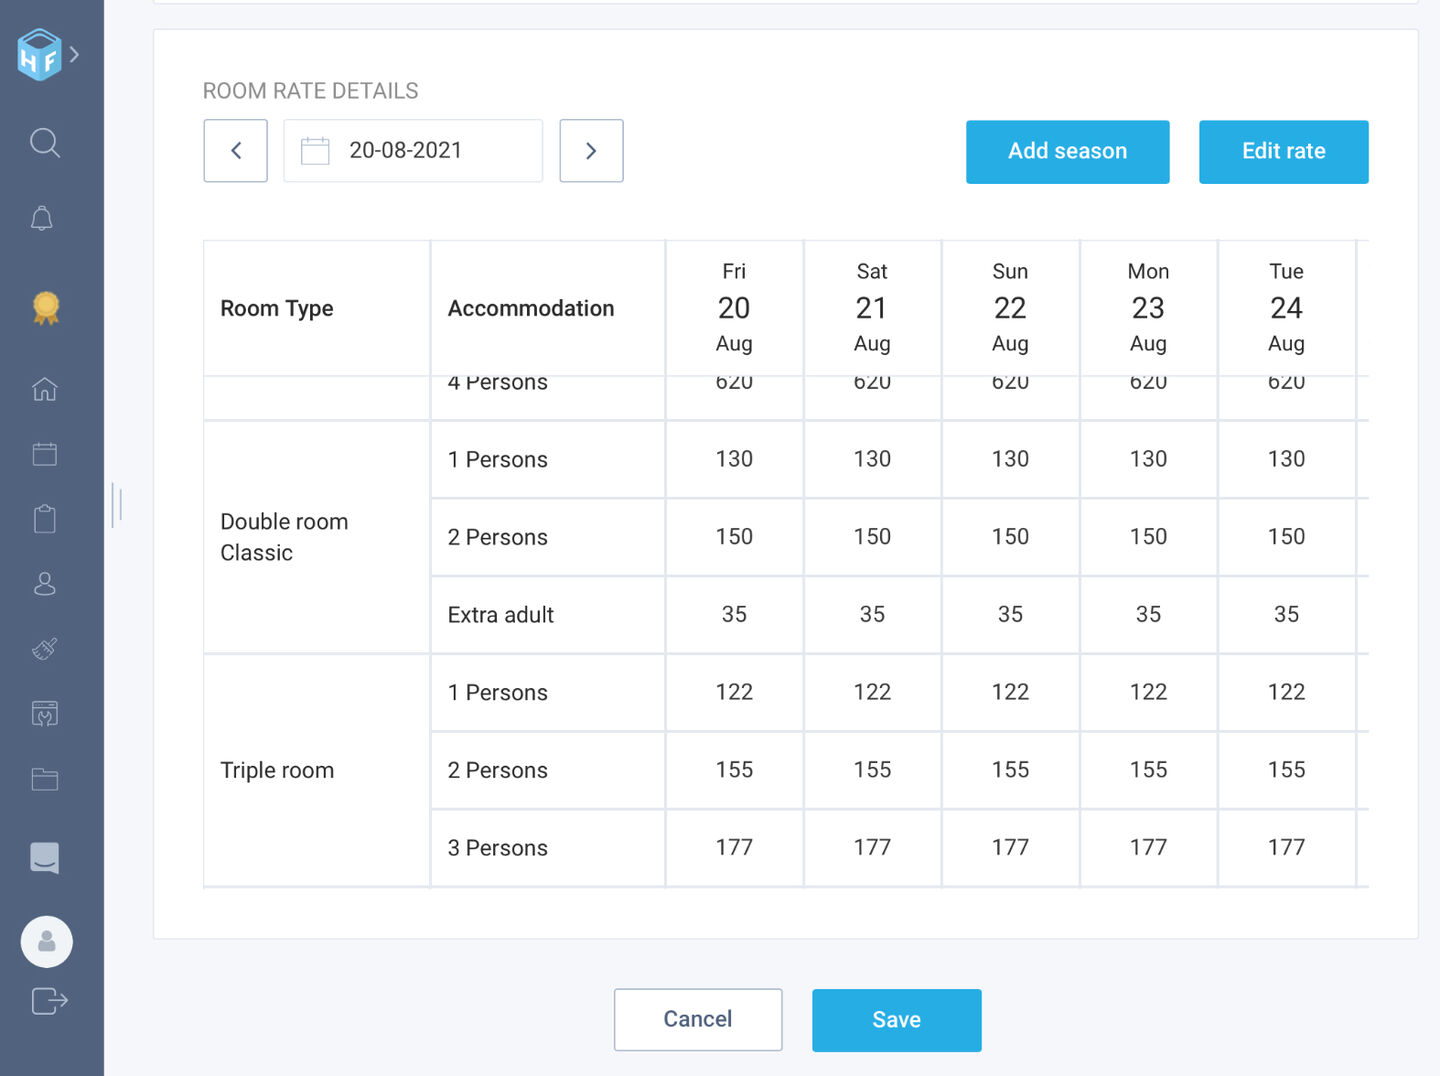 Improved room rate view: improved usability on tablets and mobile devices